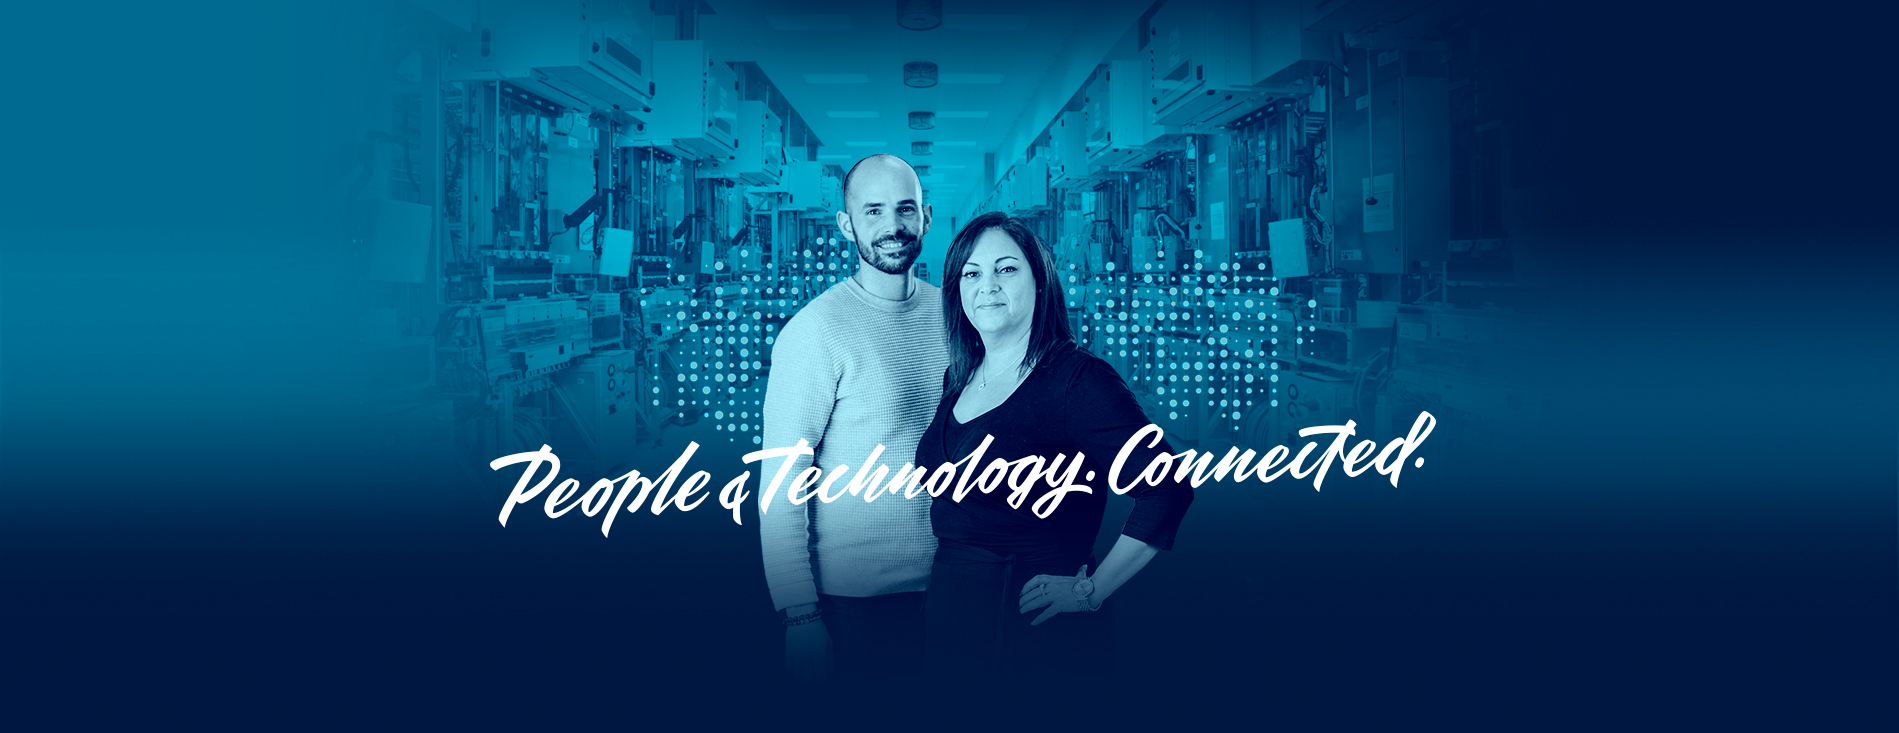 people technology connected